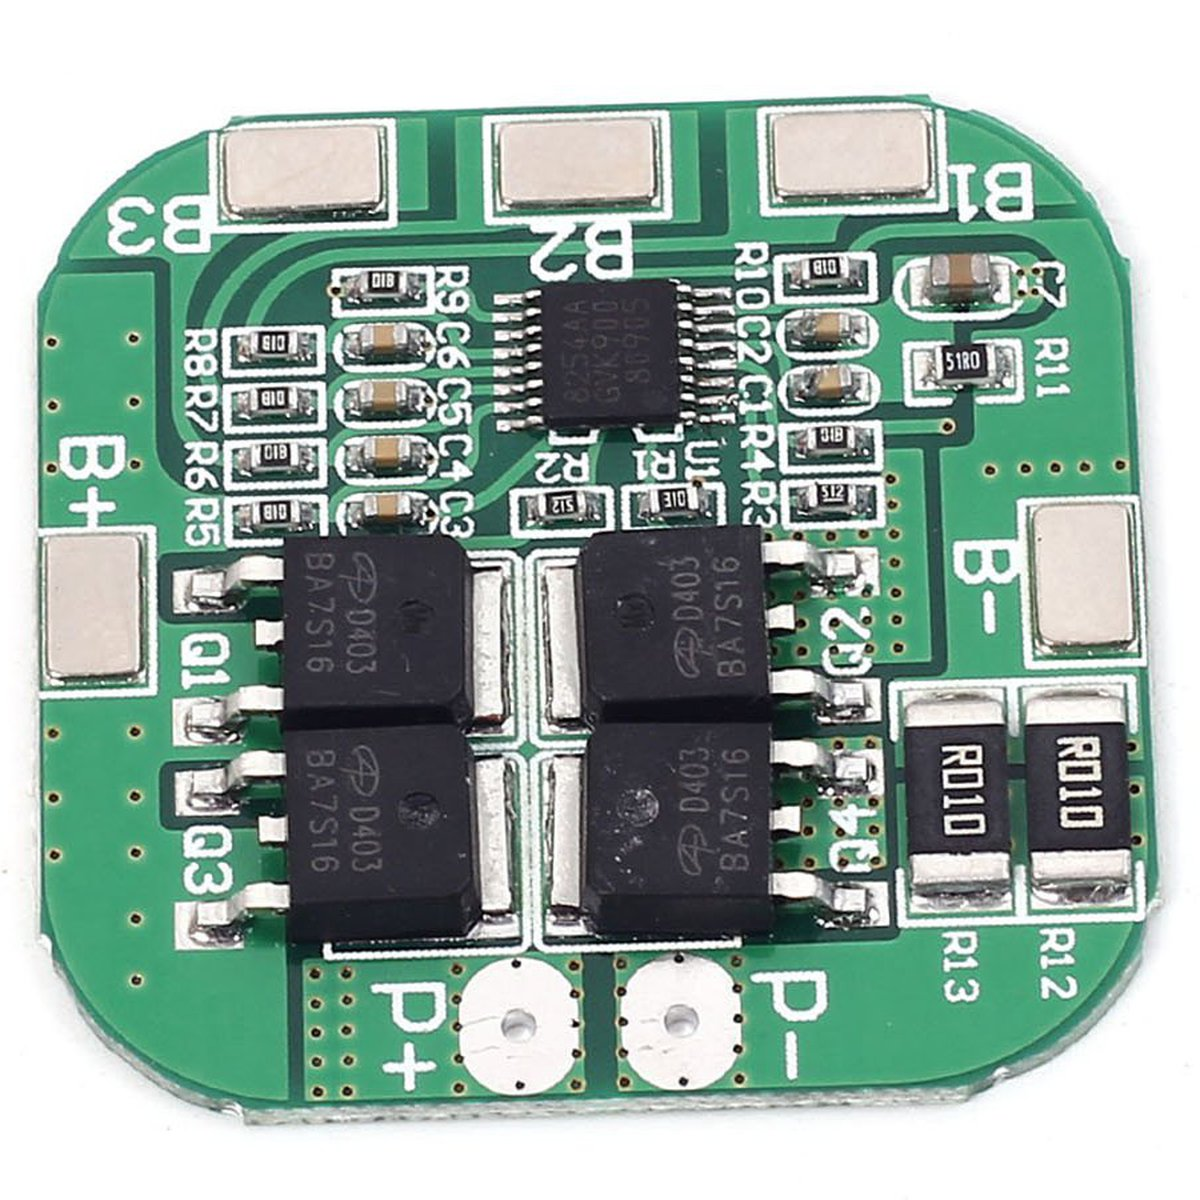 4S 14 8V Lithium Battery Protection Board(13229) from